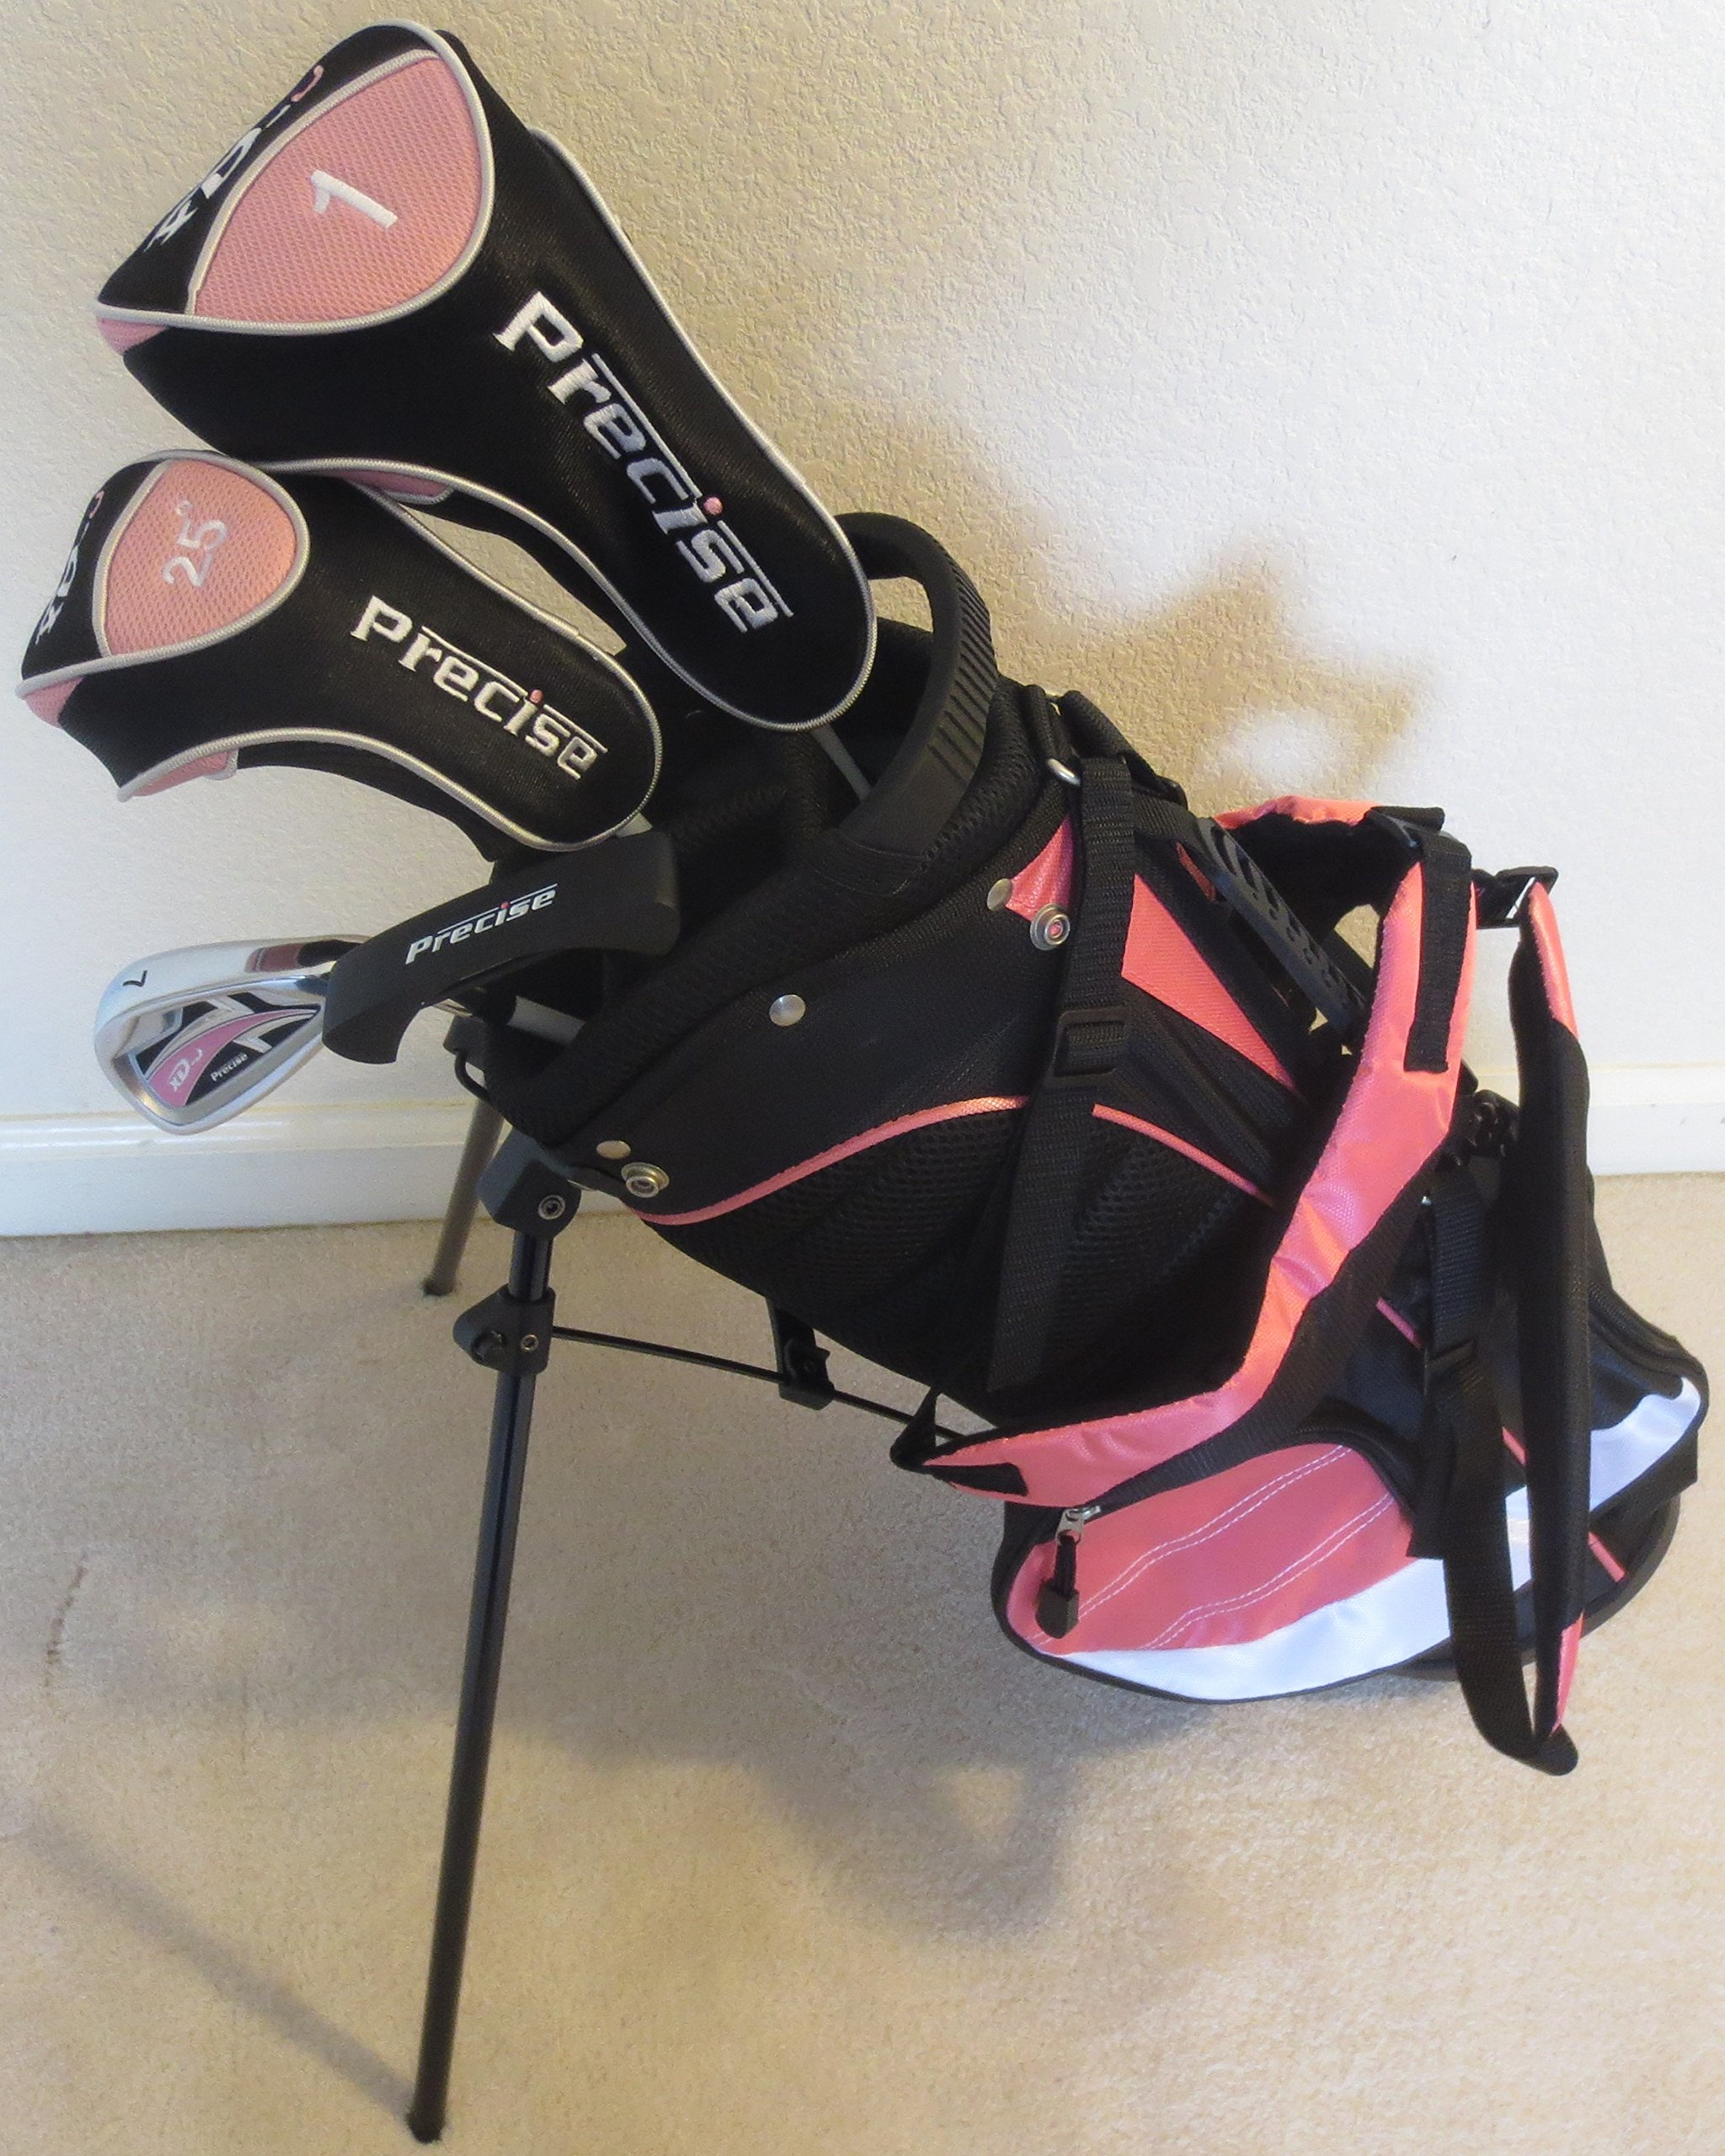 Girls Junior Golf Club Set with Stand Bag for Kids Ages 3-6 Pink Color Right Handed Premium Professional Quality